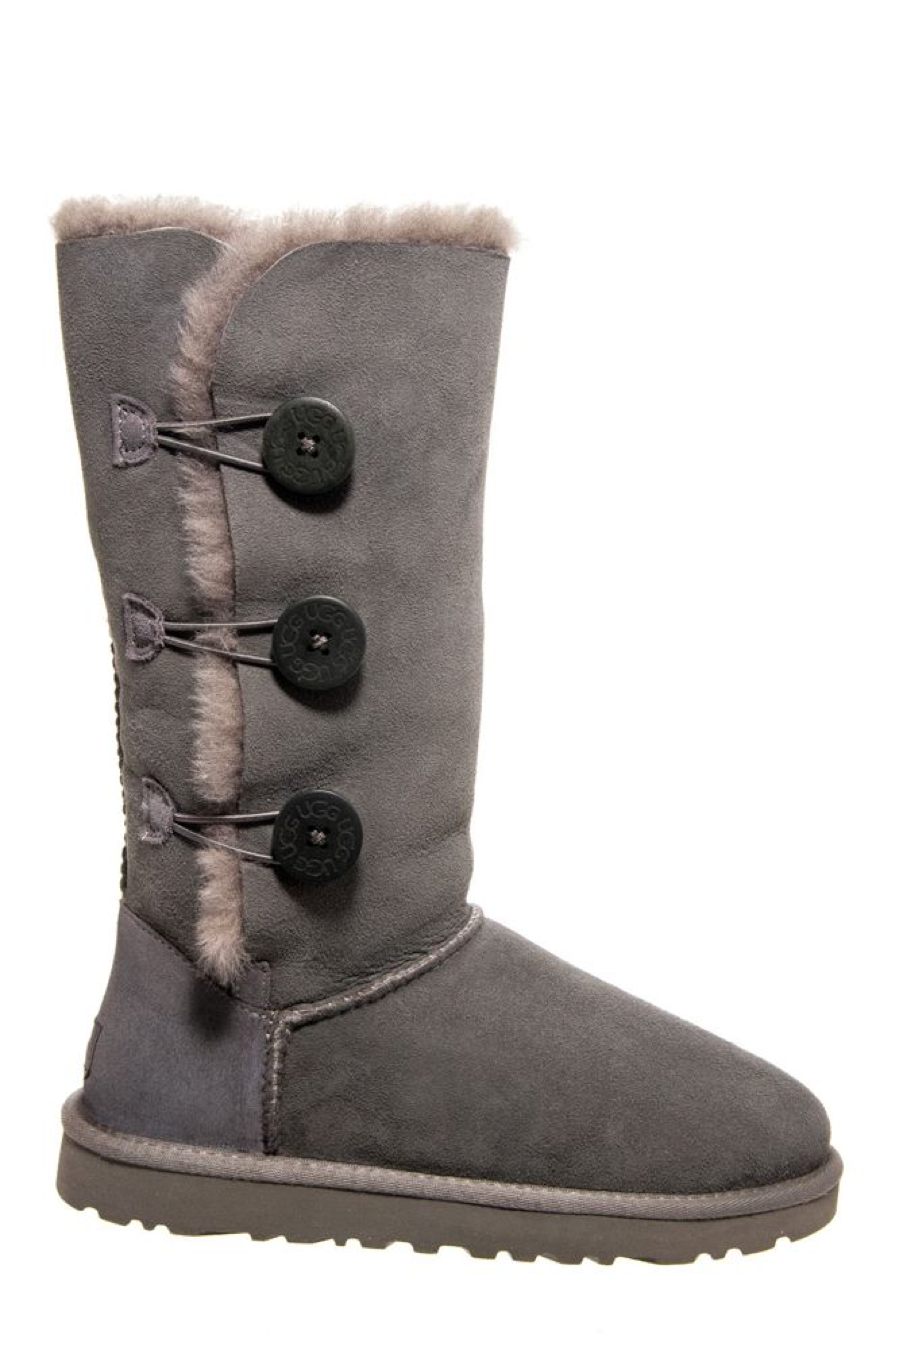 UGG Women's Bailey Button Triplet Grey - City Limit NY